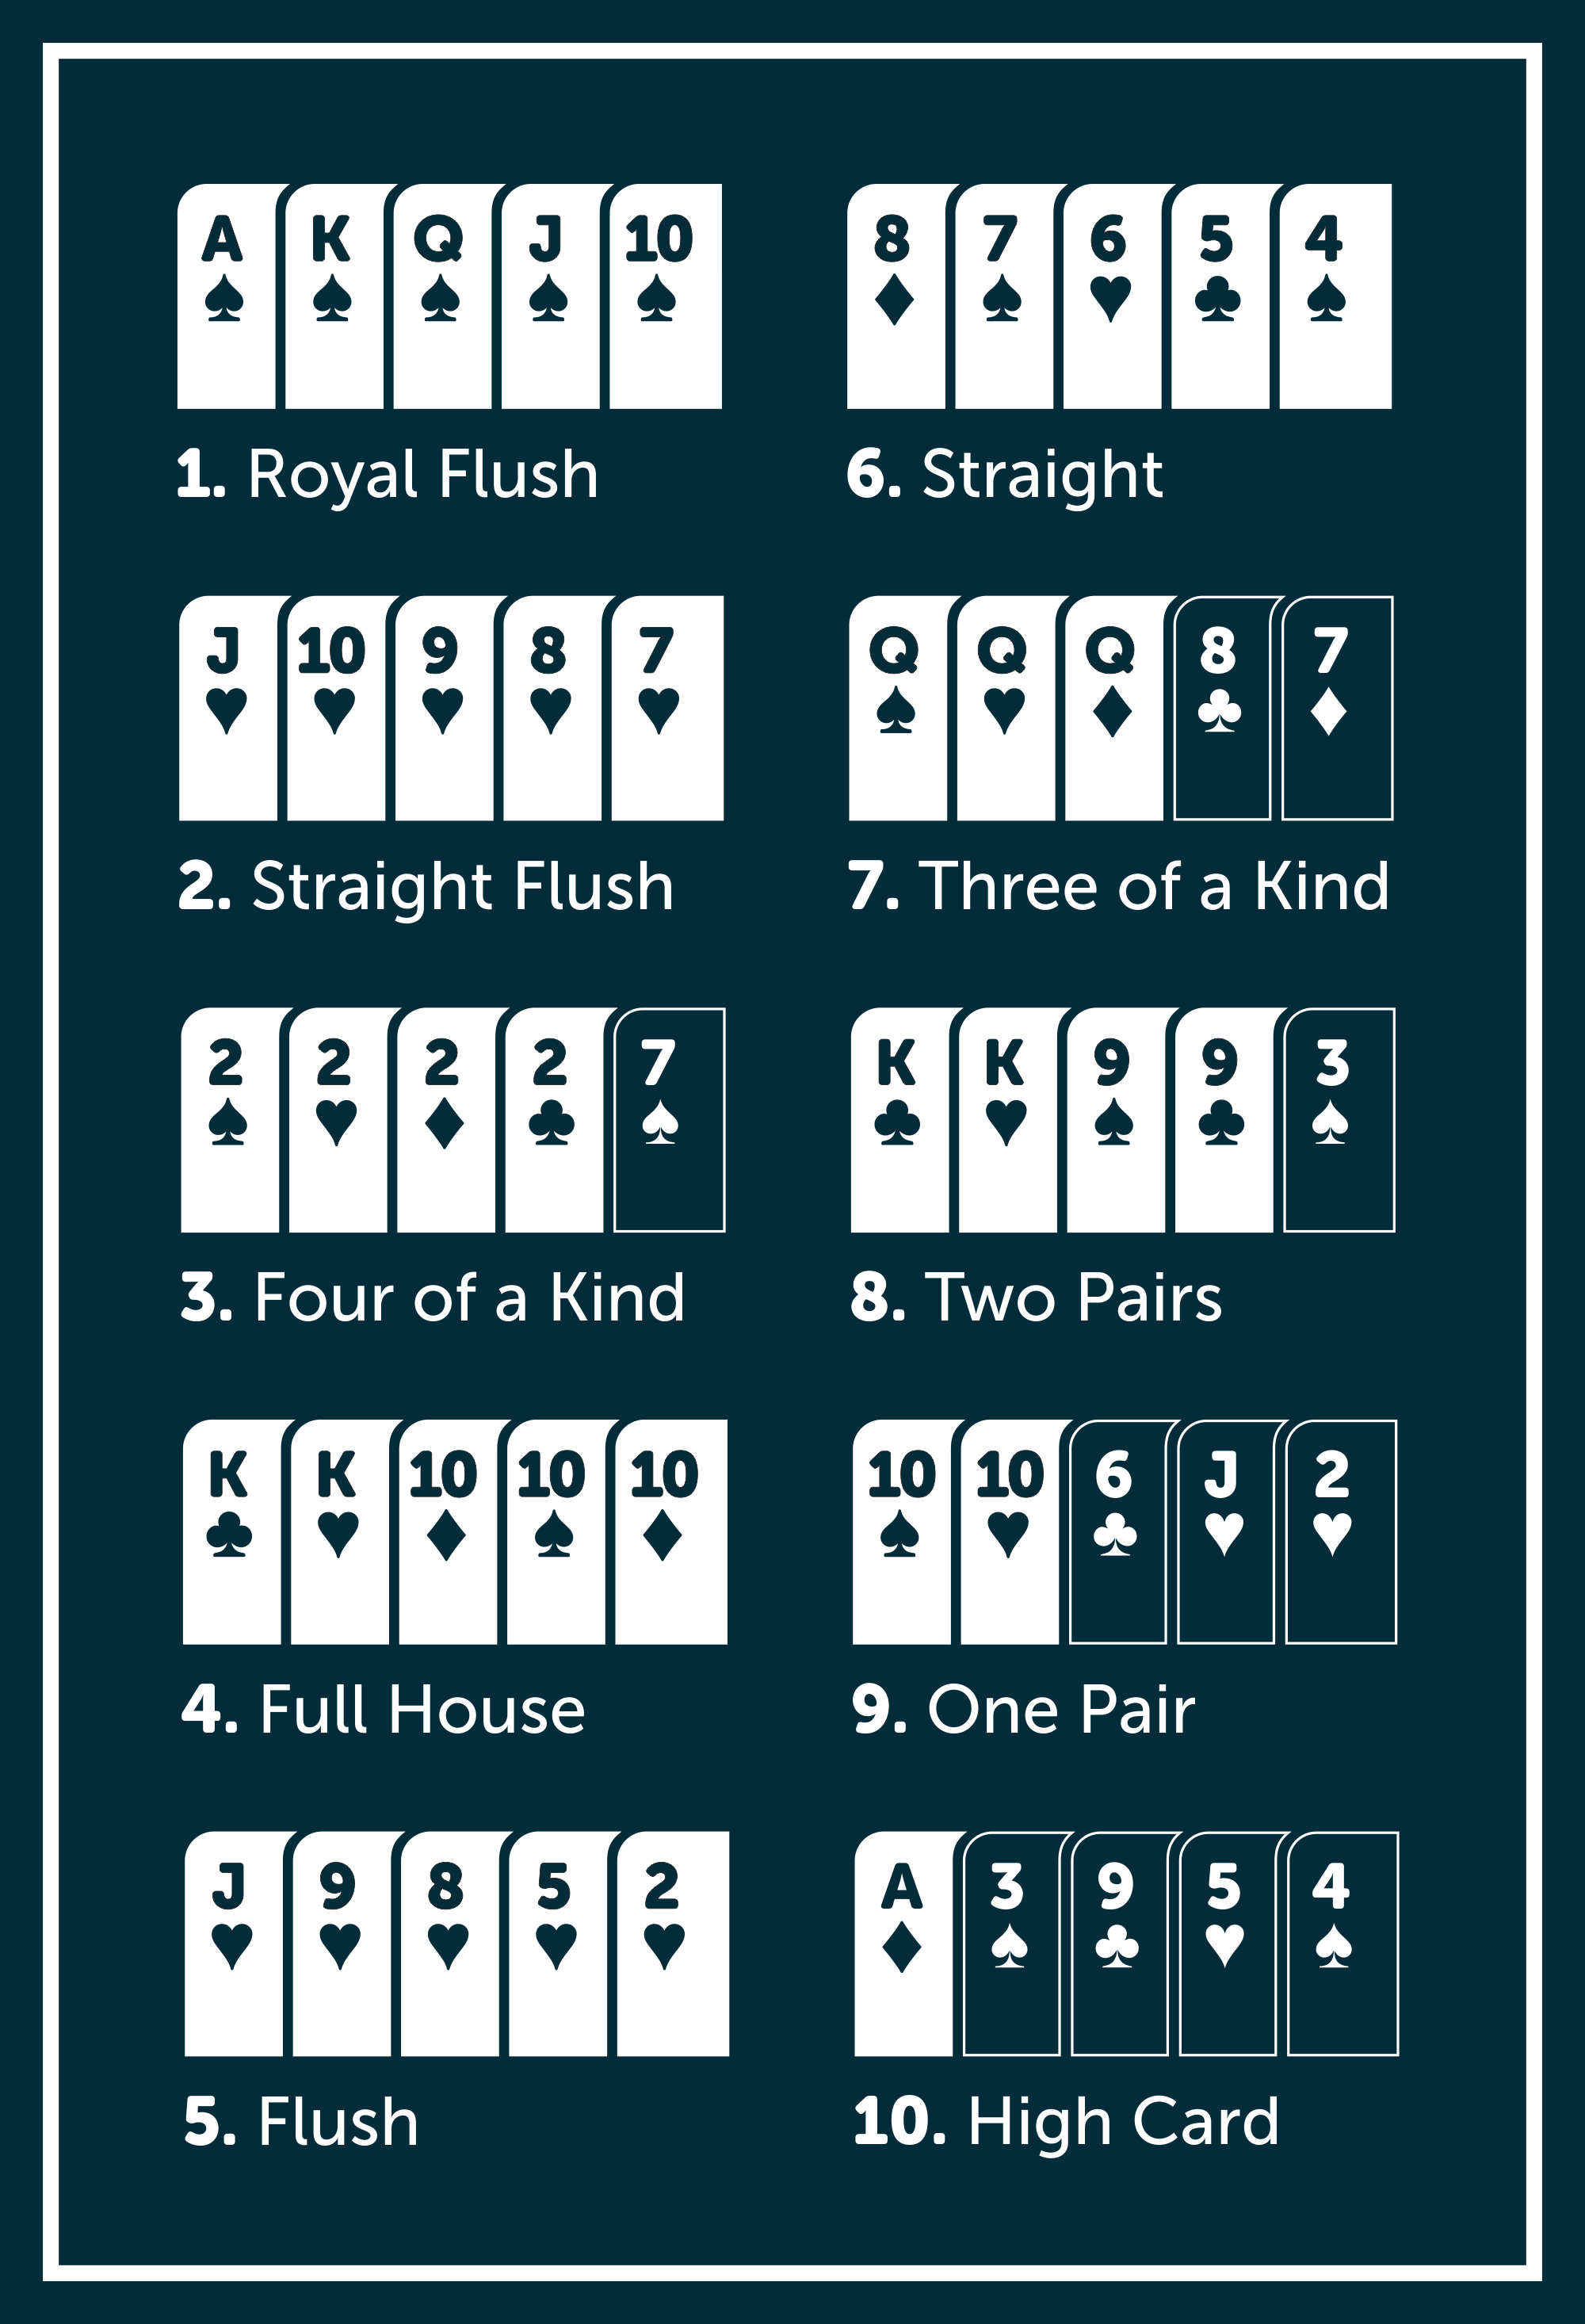 Poker Hands.png English: Poker Hands Deutsch: Pokerhände Date May 2014 Source Own work Author CellarDoor85 (Robert Aehnelt) Permission (Reusing